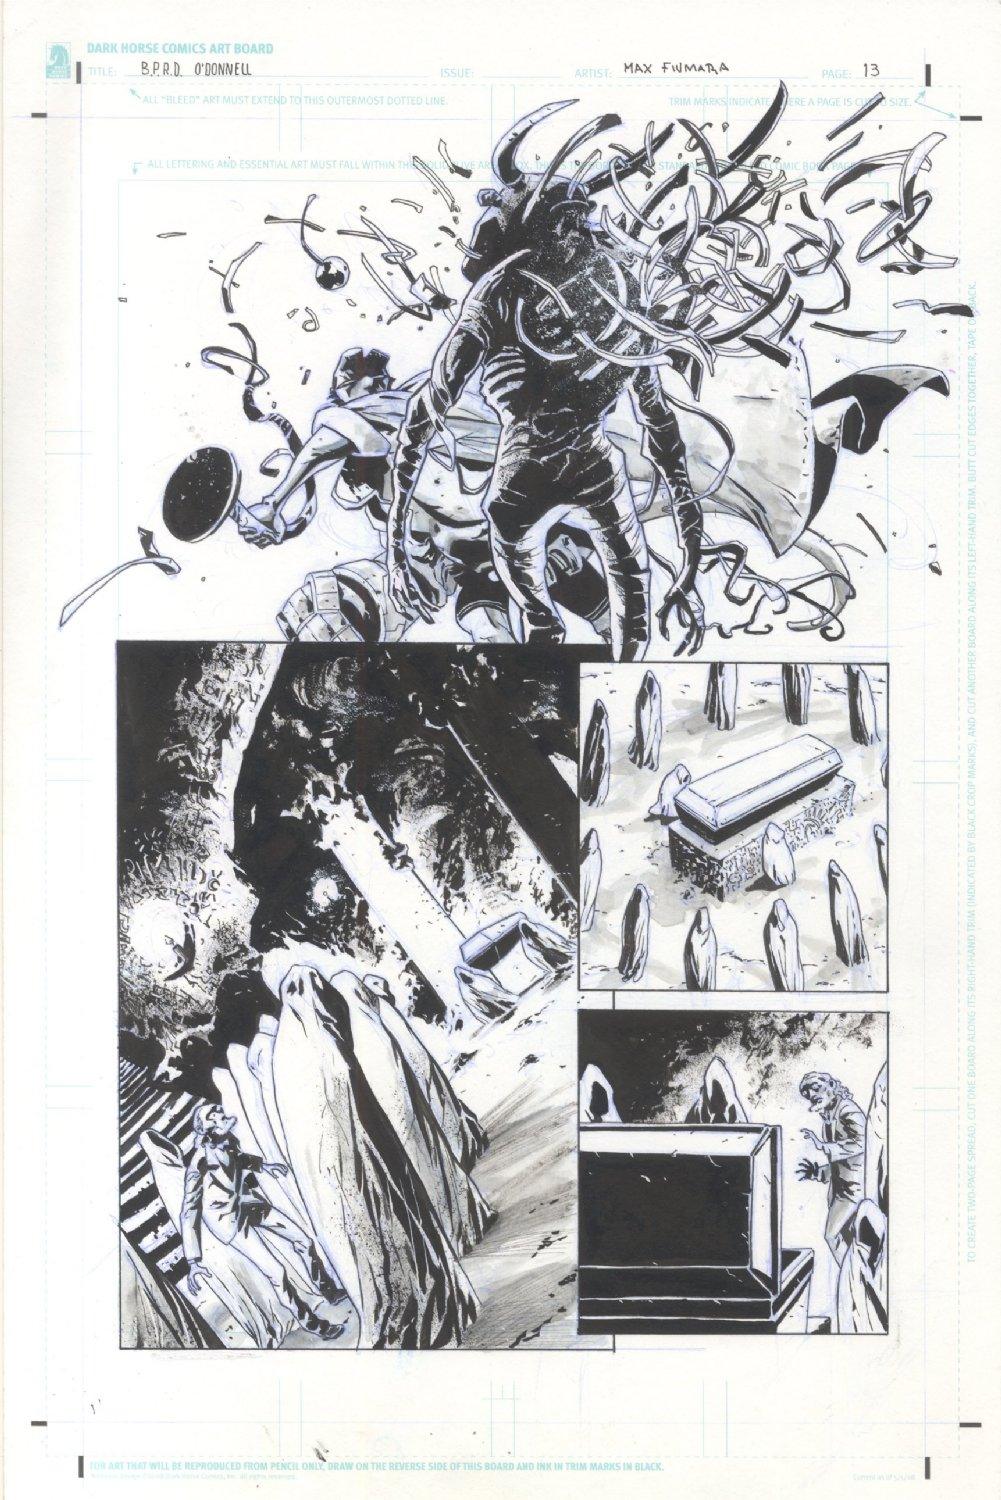 BPRD Hell on Earth Transformation of JH Odonnell